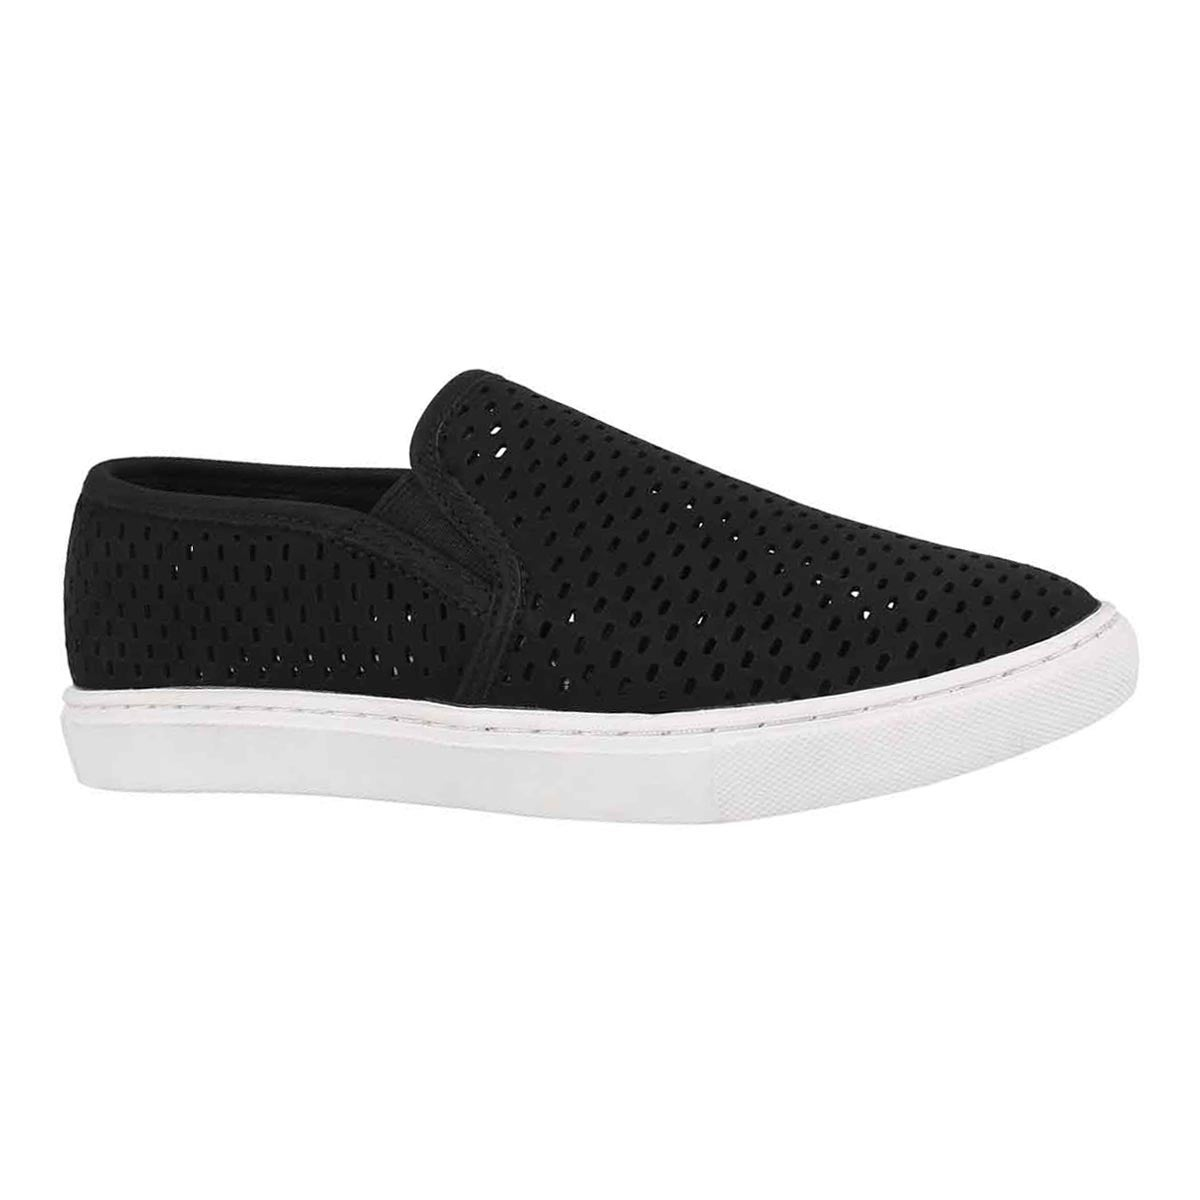 Lds Elouise black casual slip on shoe